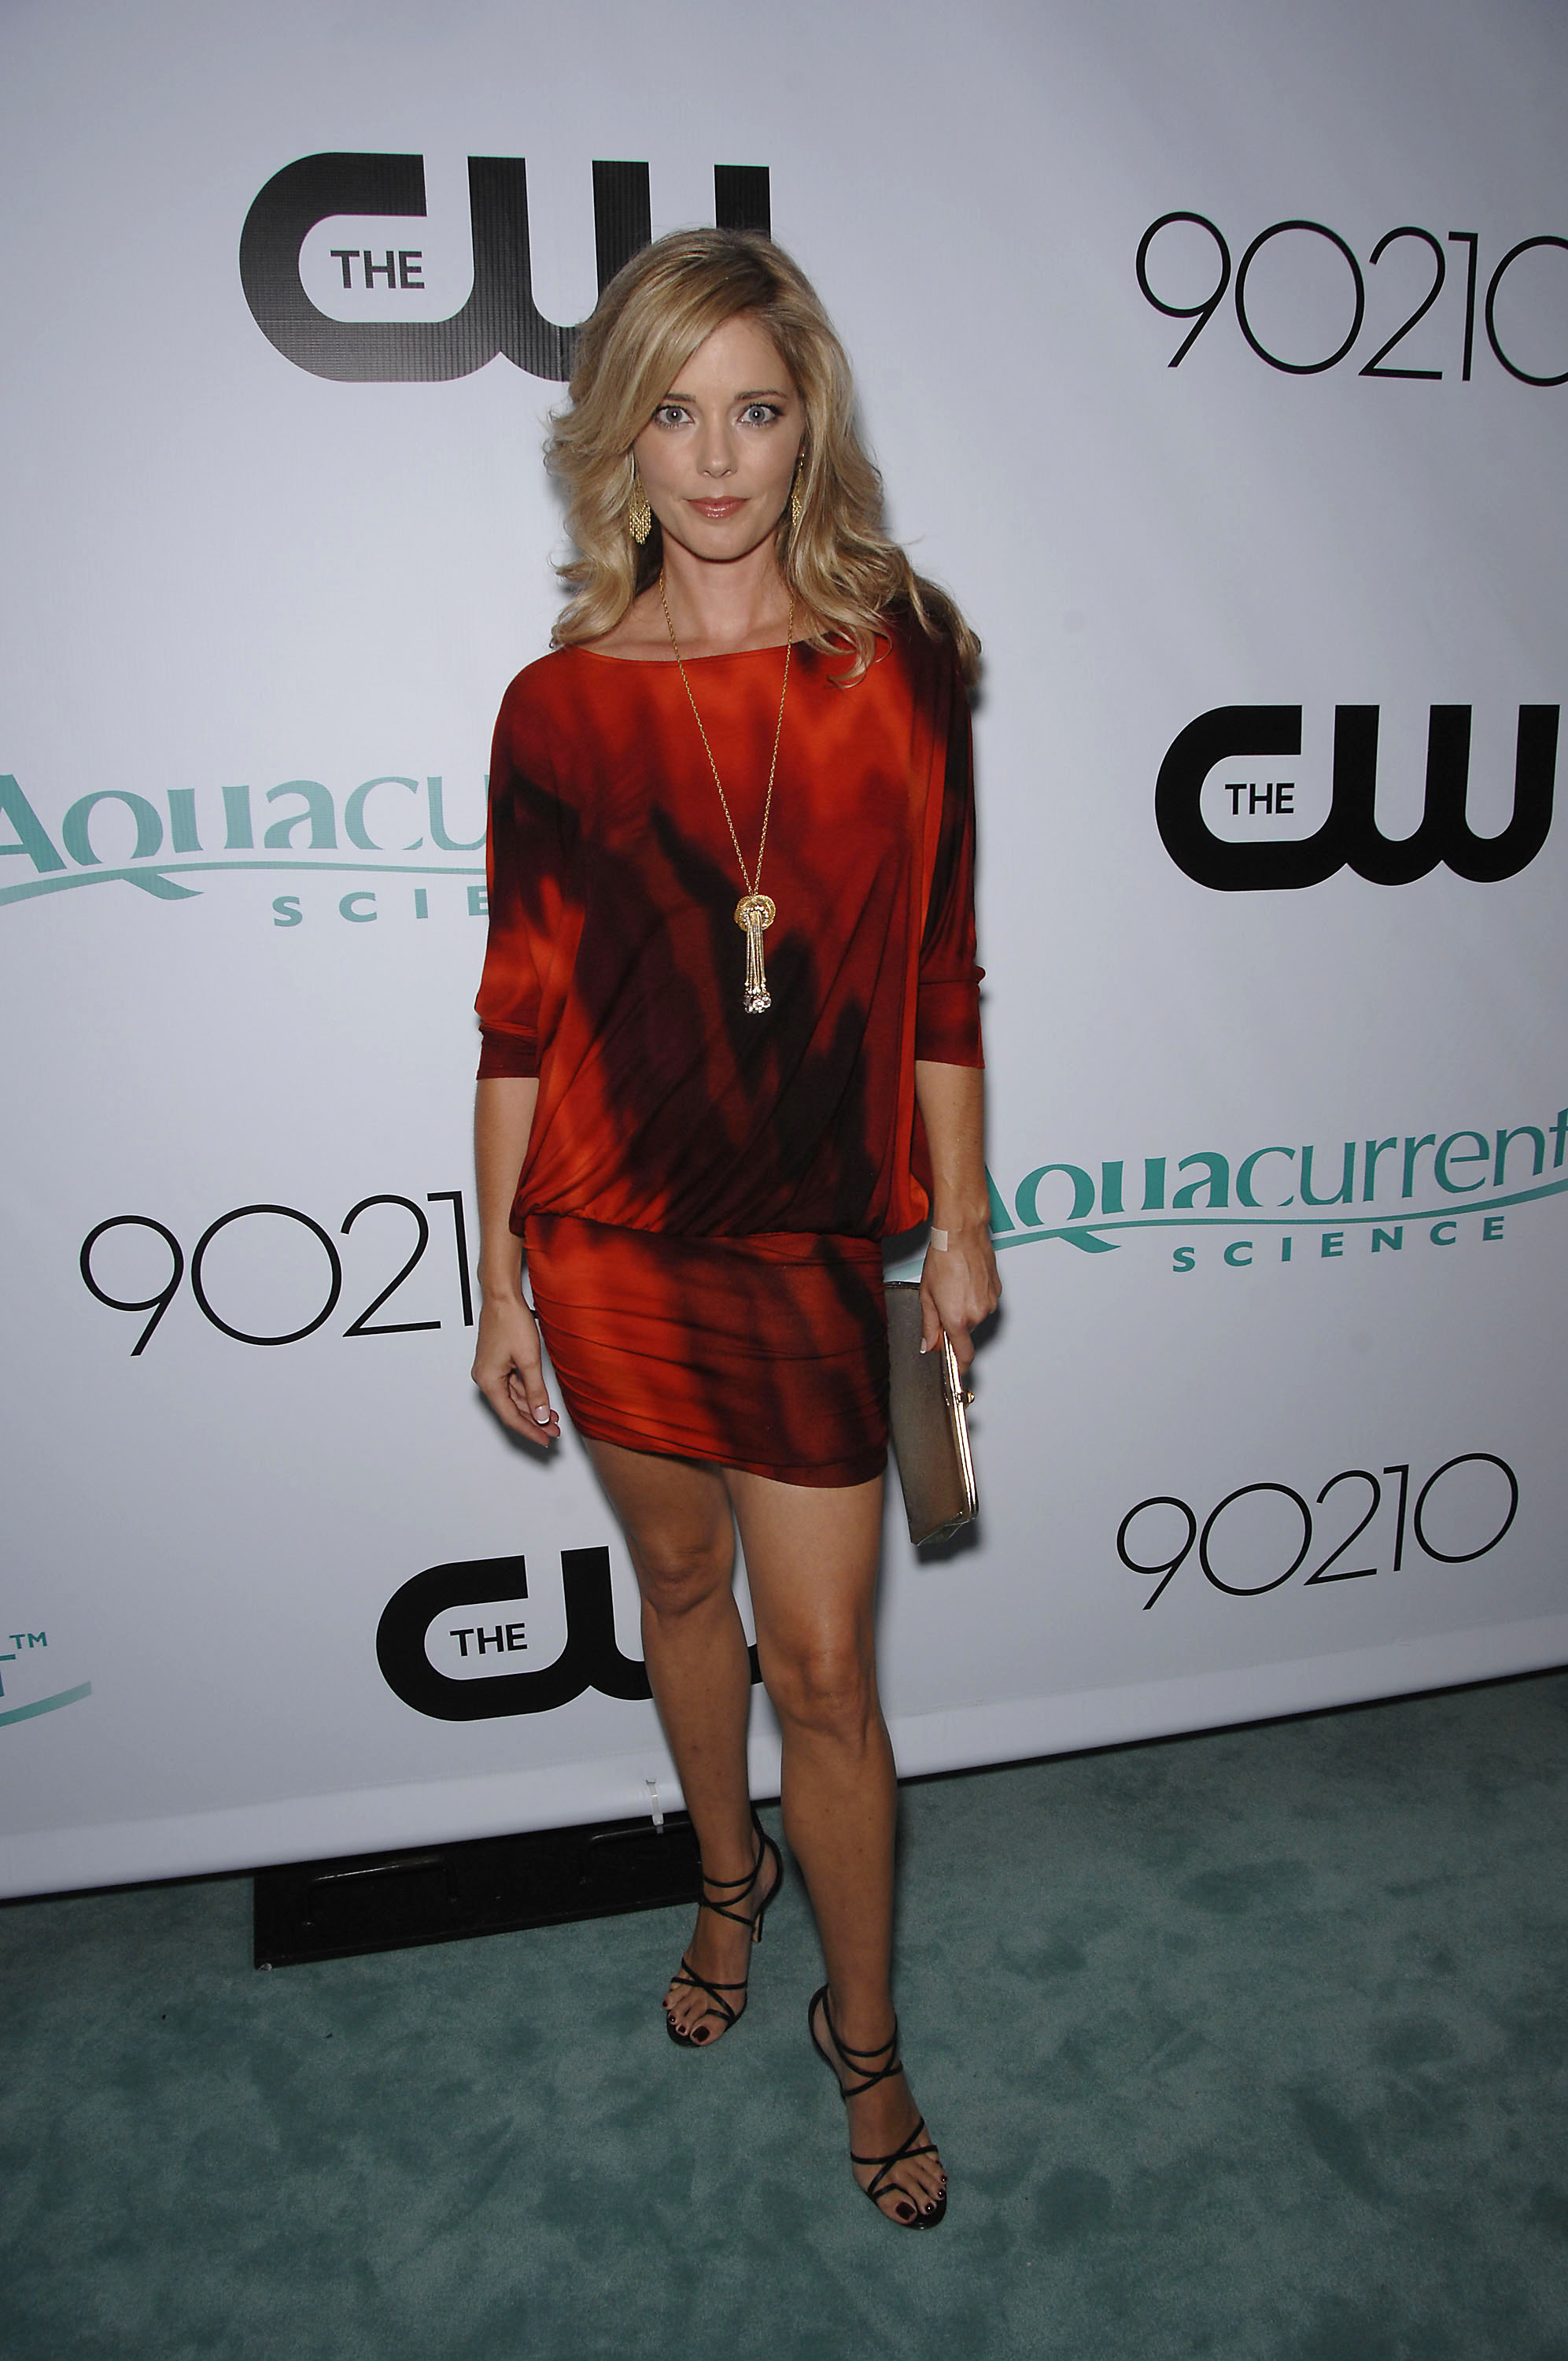 christina moore hotchristina moore height, christina moore, christina moore facebook, christina moore imdb, christina moore wikipedia, christina moore instagram, christina moore hot, christina moore net worth, christina moore movies and tv shows, christina moore laurie forman, christina moore realtor, christina moore nudography